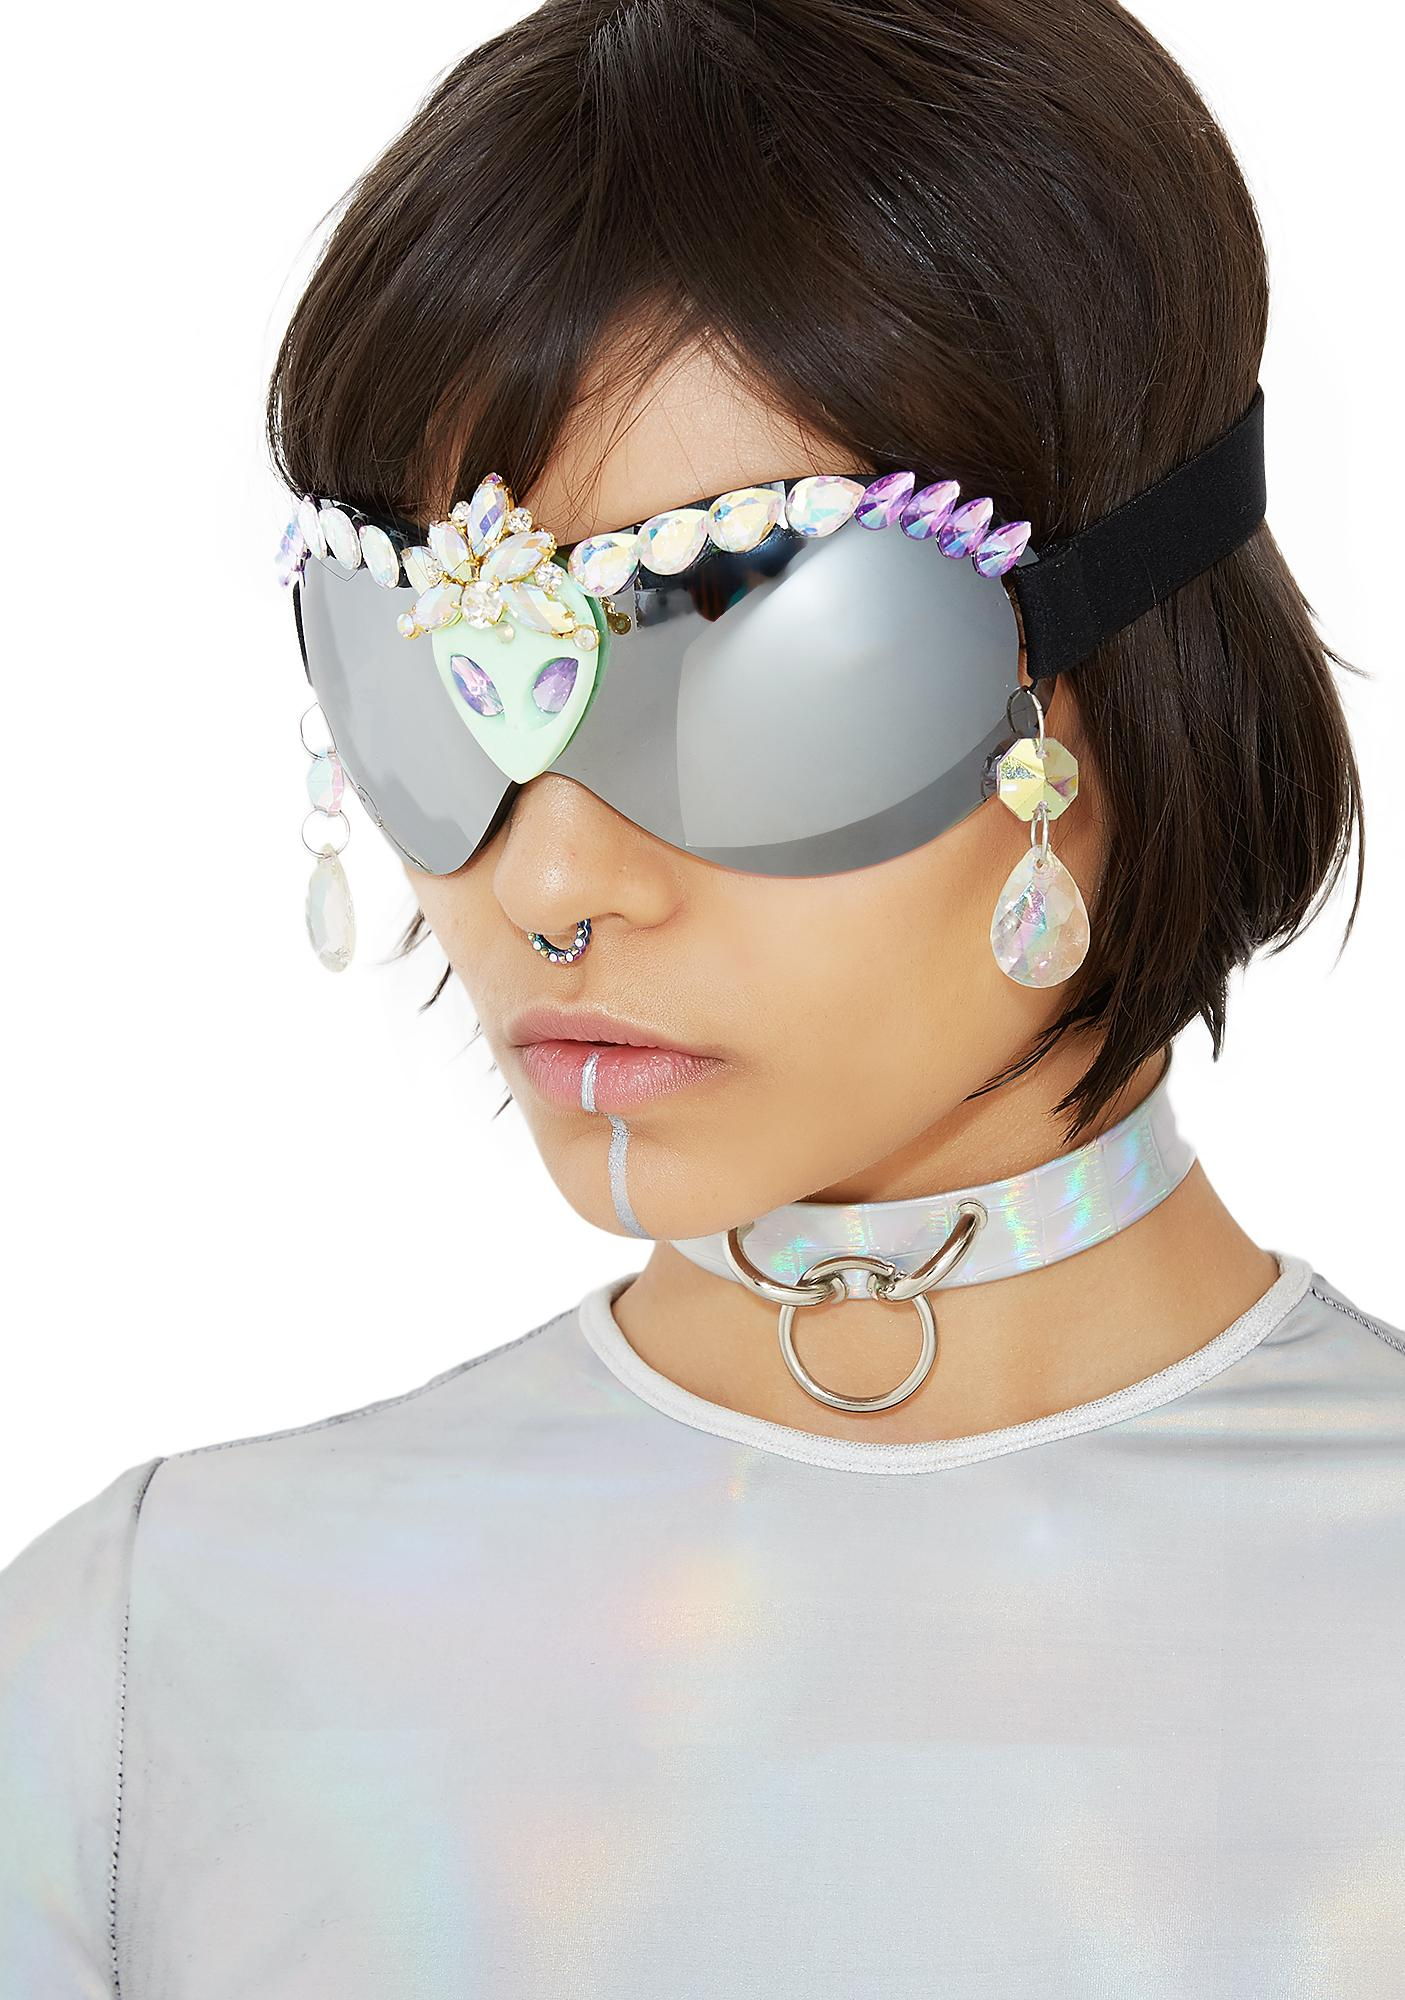 ReblKitty Space Queen Goggles